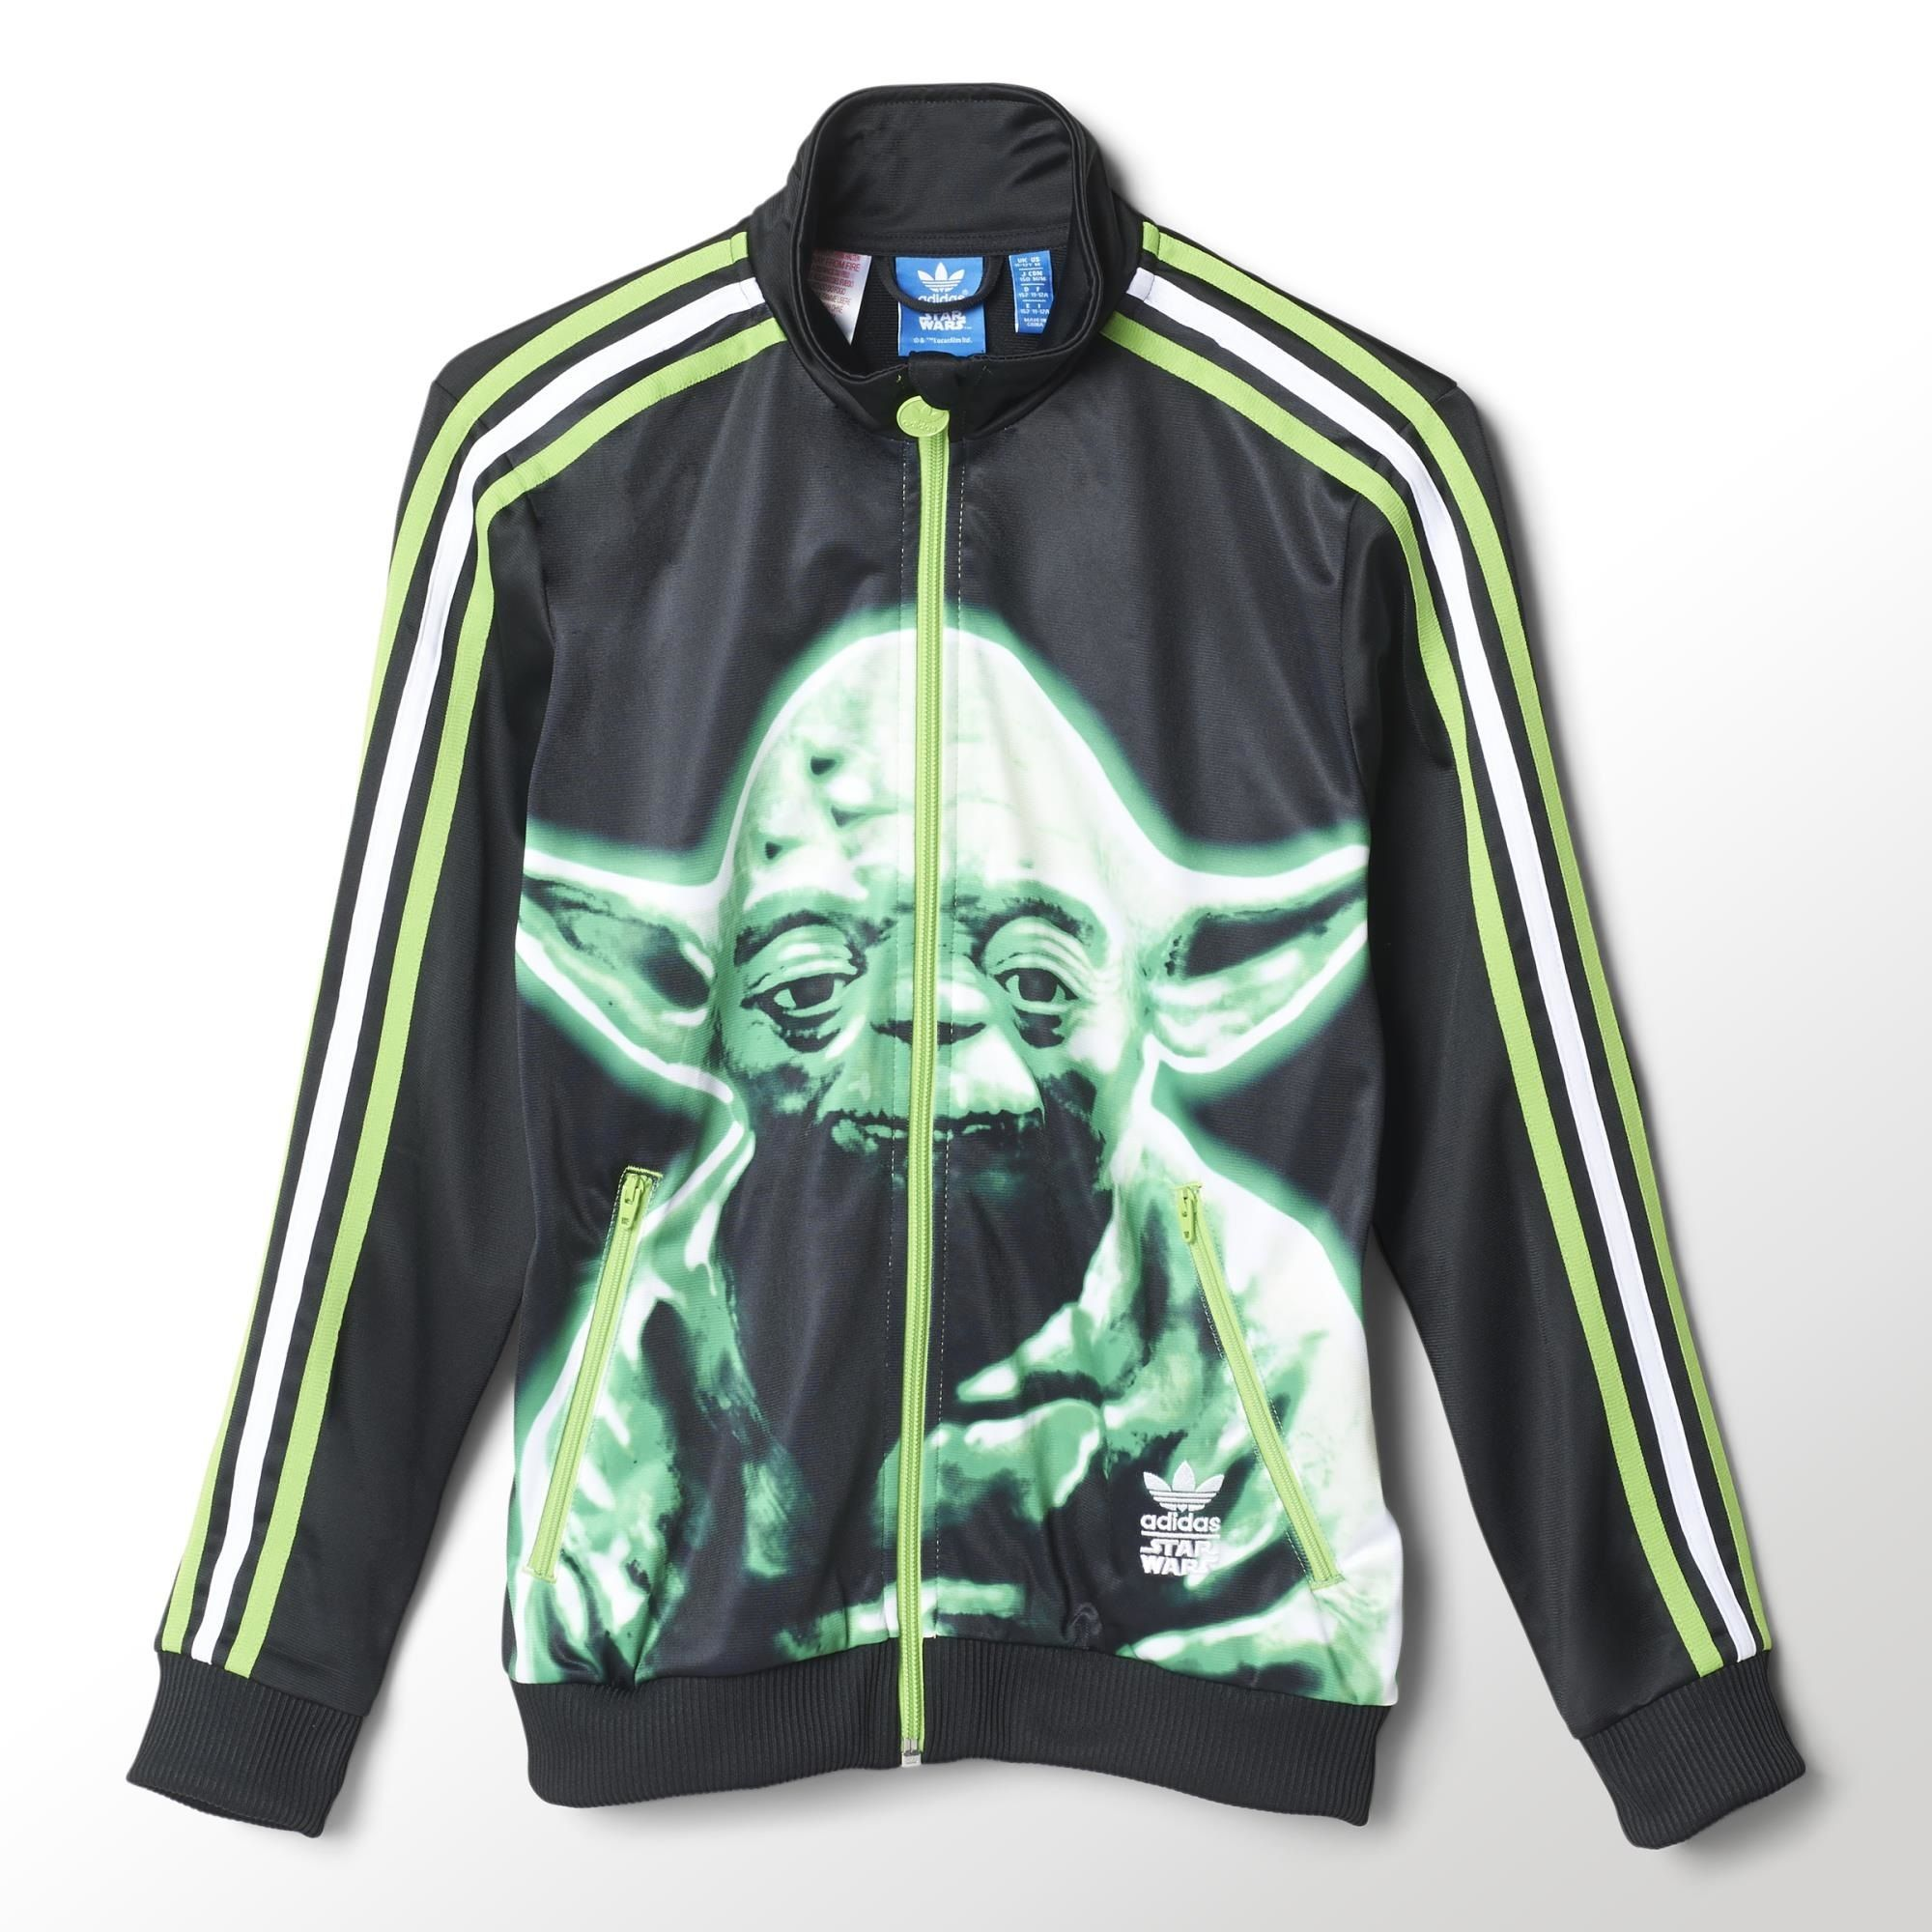 Yoda is your guide as you cruise the streets in this junior